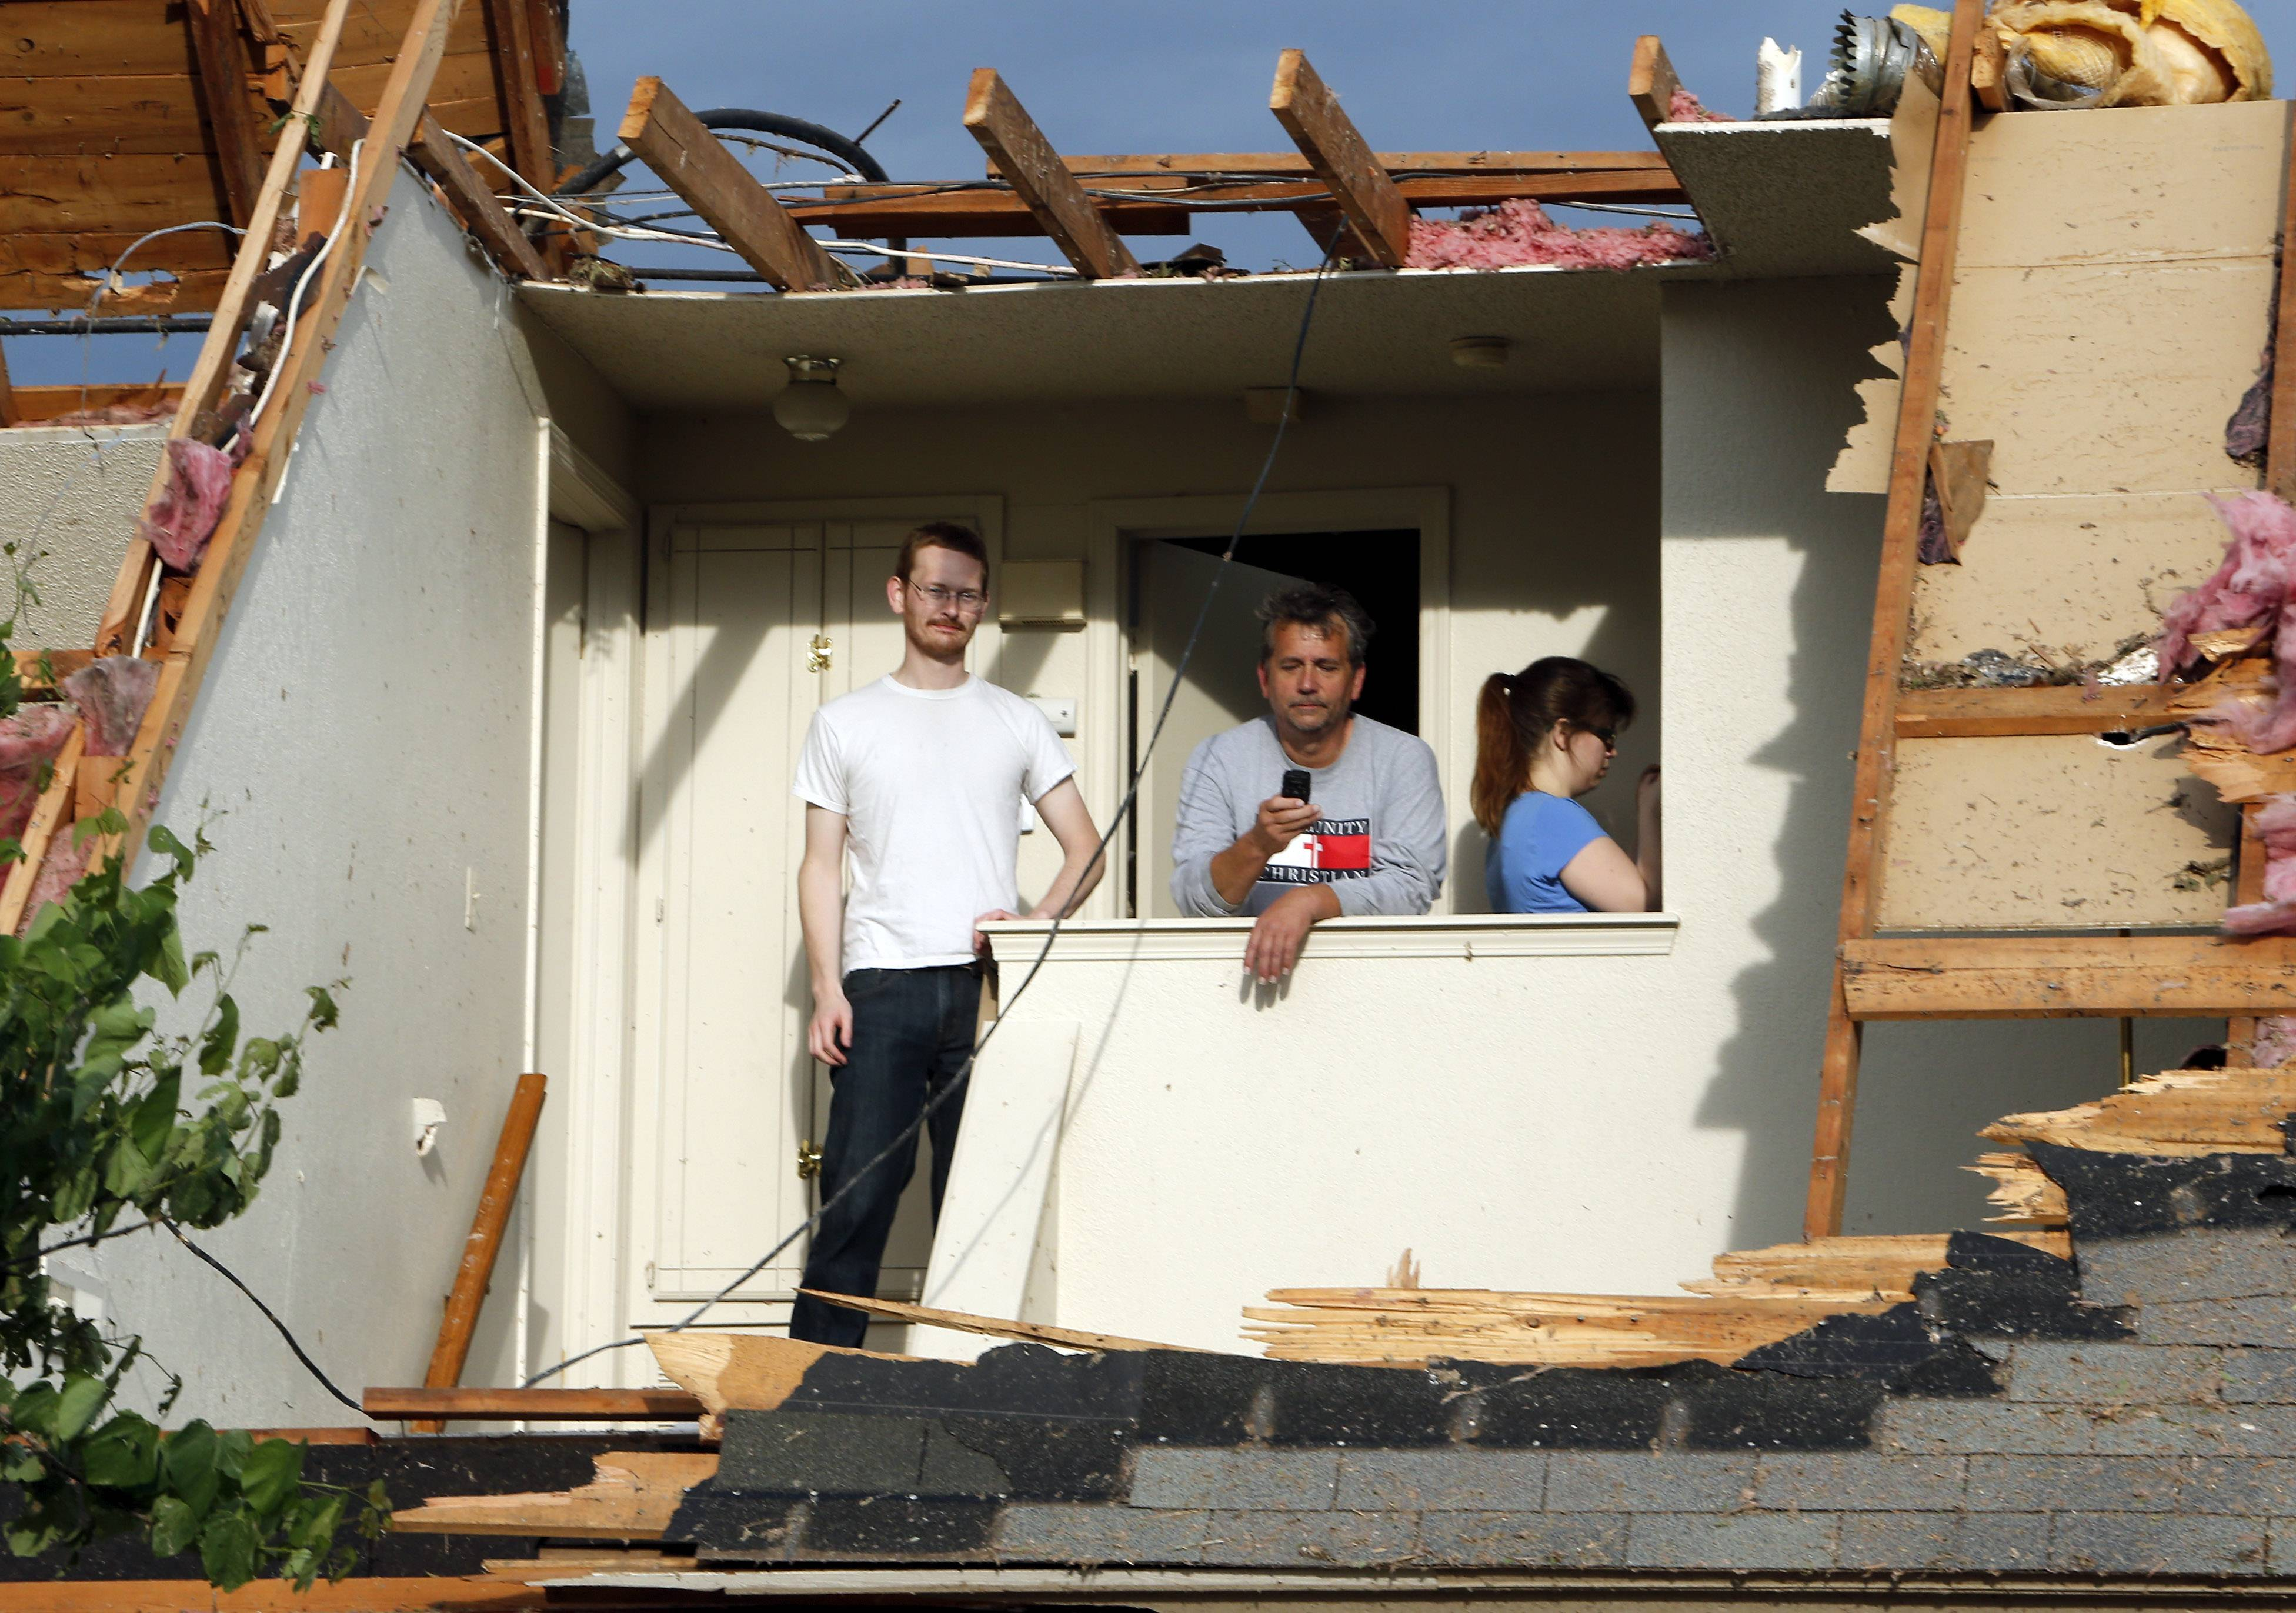 Brian Mullins and his Father Terry survey tornado damage to the home of Brian's girlfriend Sara Robinson, right, on Tuesday, May 21, 2013 in Moore, Okla.